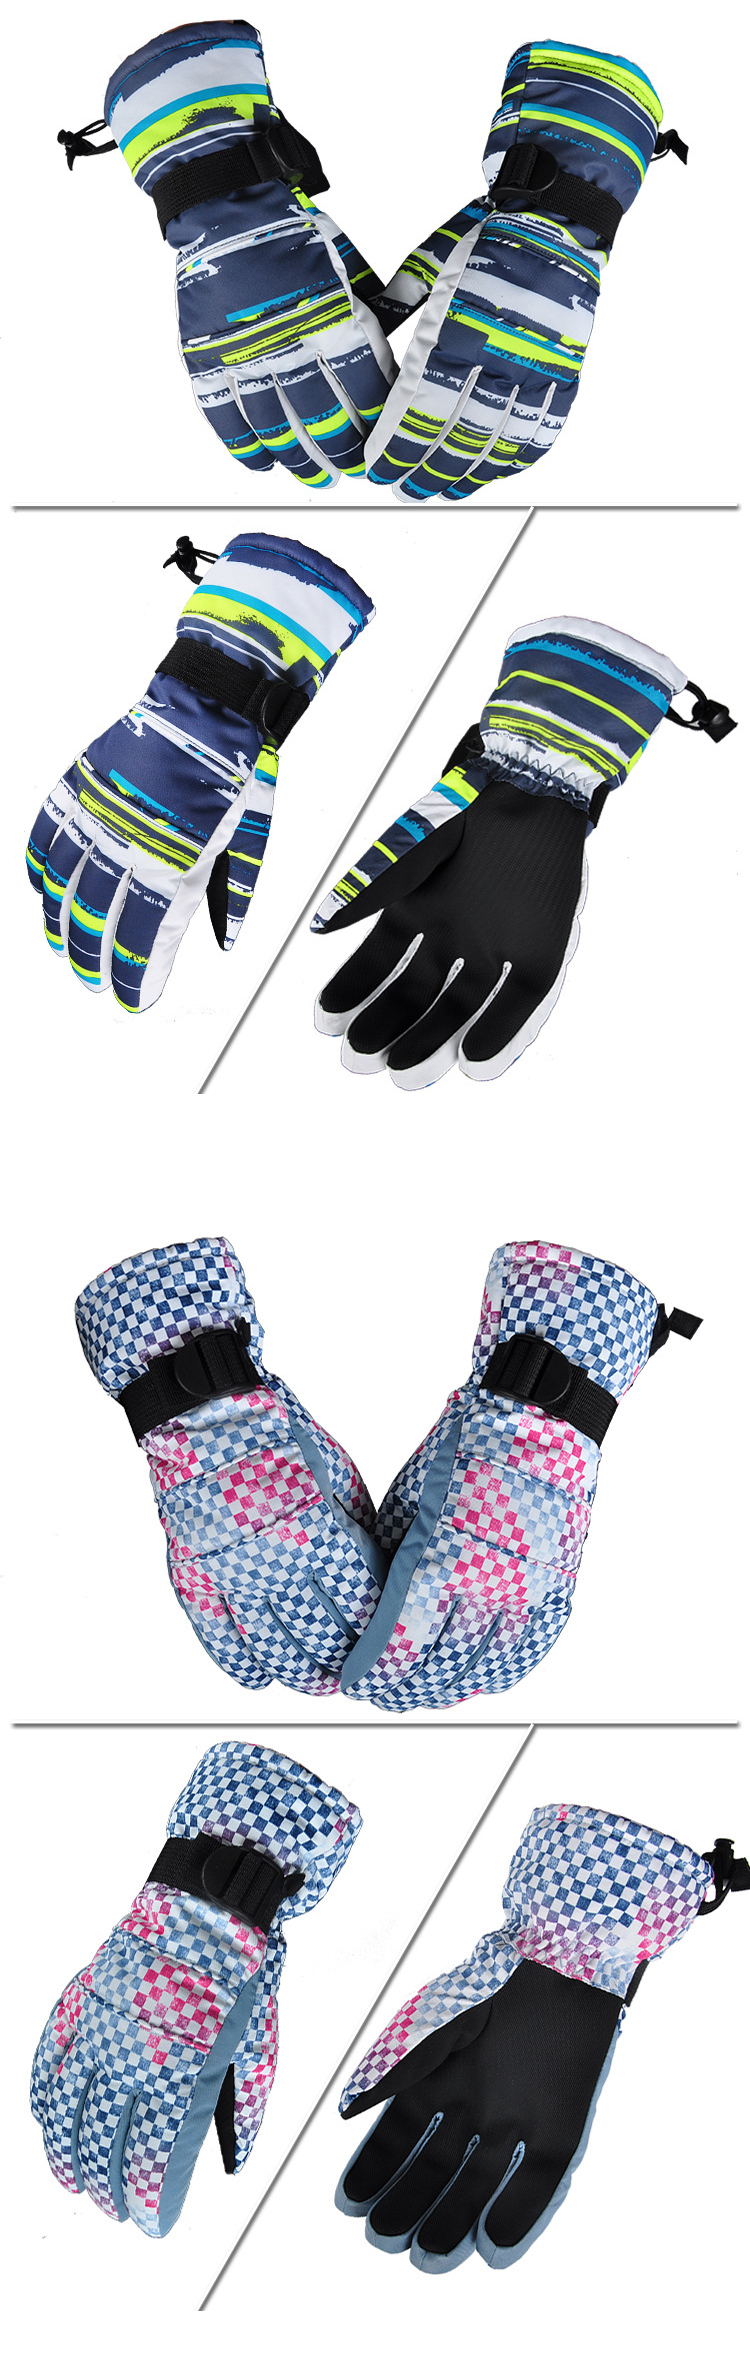 Professional Windproof Water Repellent Ski Glove Cold Resistance -30° Winter Riding Warm Gloves